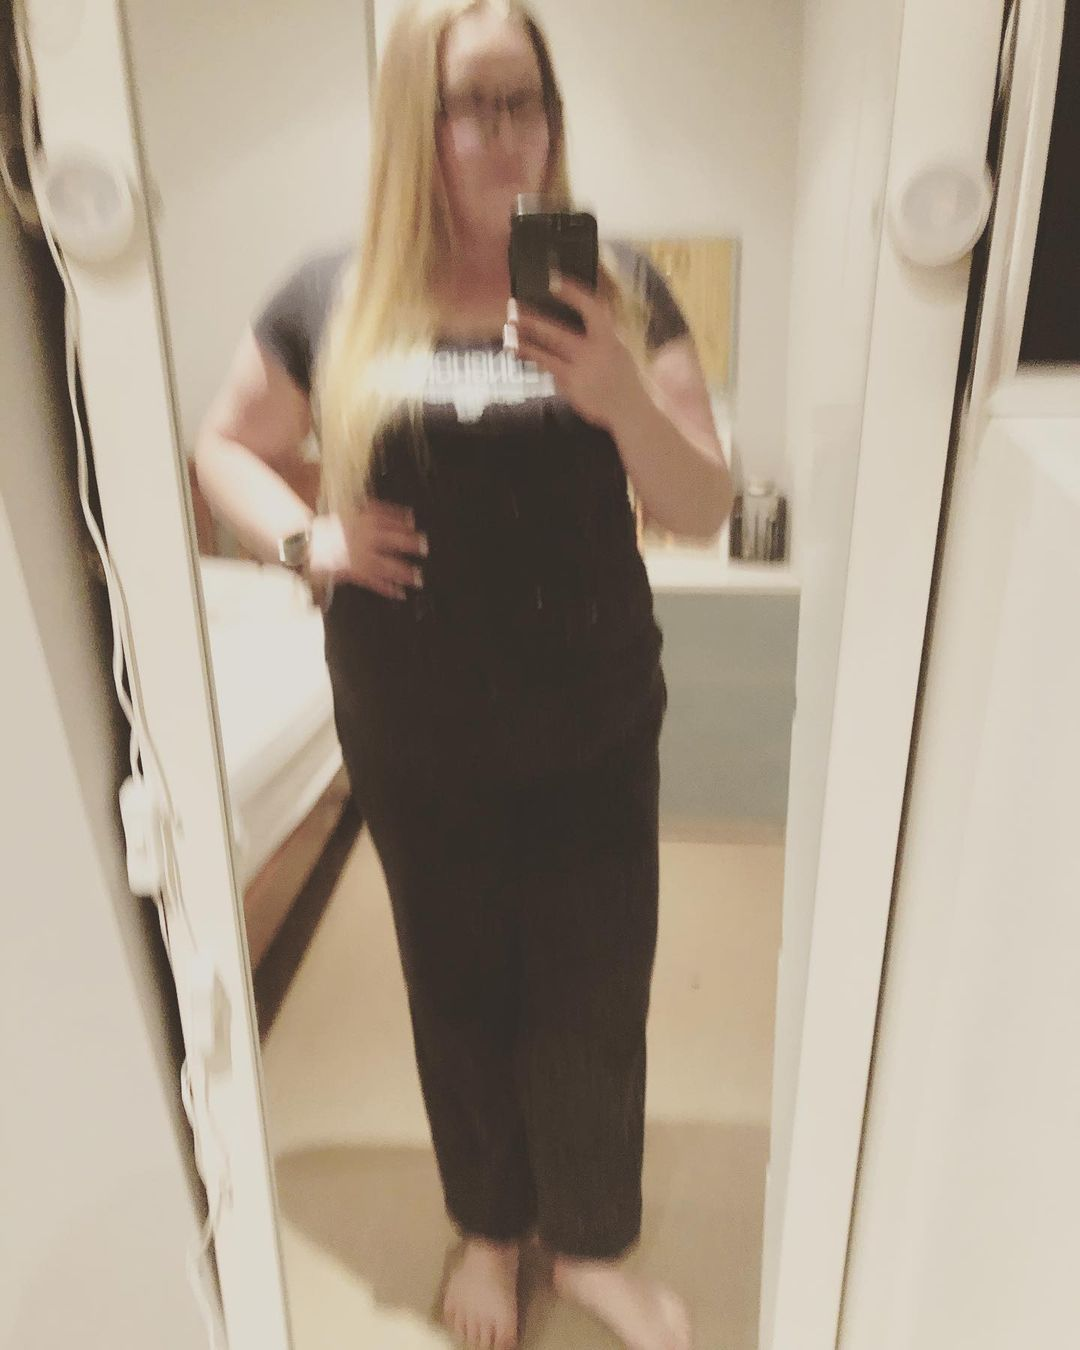 A blurry shot, but a happy (and exhausted) feel. Getting myself back on track, doing extra fitness, and looking after tiny kittens and helped my waistline quite a bit. Body is tired, so an early night for me. But I'm happy! #progress #happy #mirrorselfie #fitness #changes #fitspo #fitnessmotivation #tone #weightloss #muscle #strong #waistline #selfie #mirrorselfie #workingout #backontrack #yay #fitfam